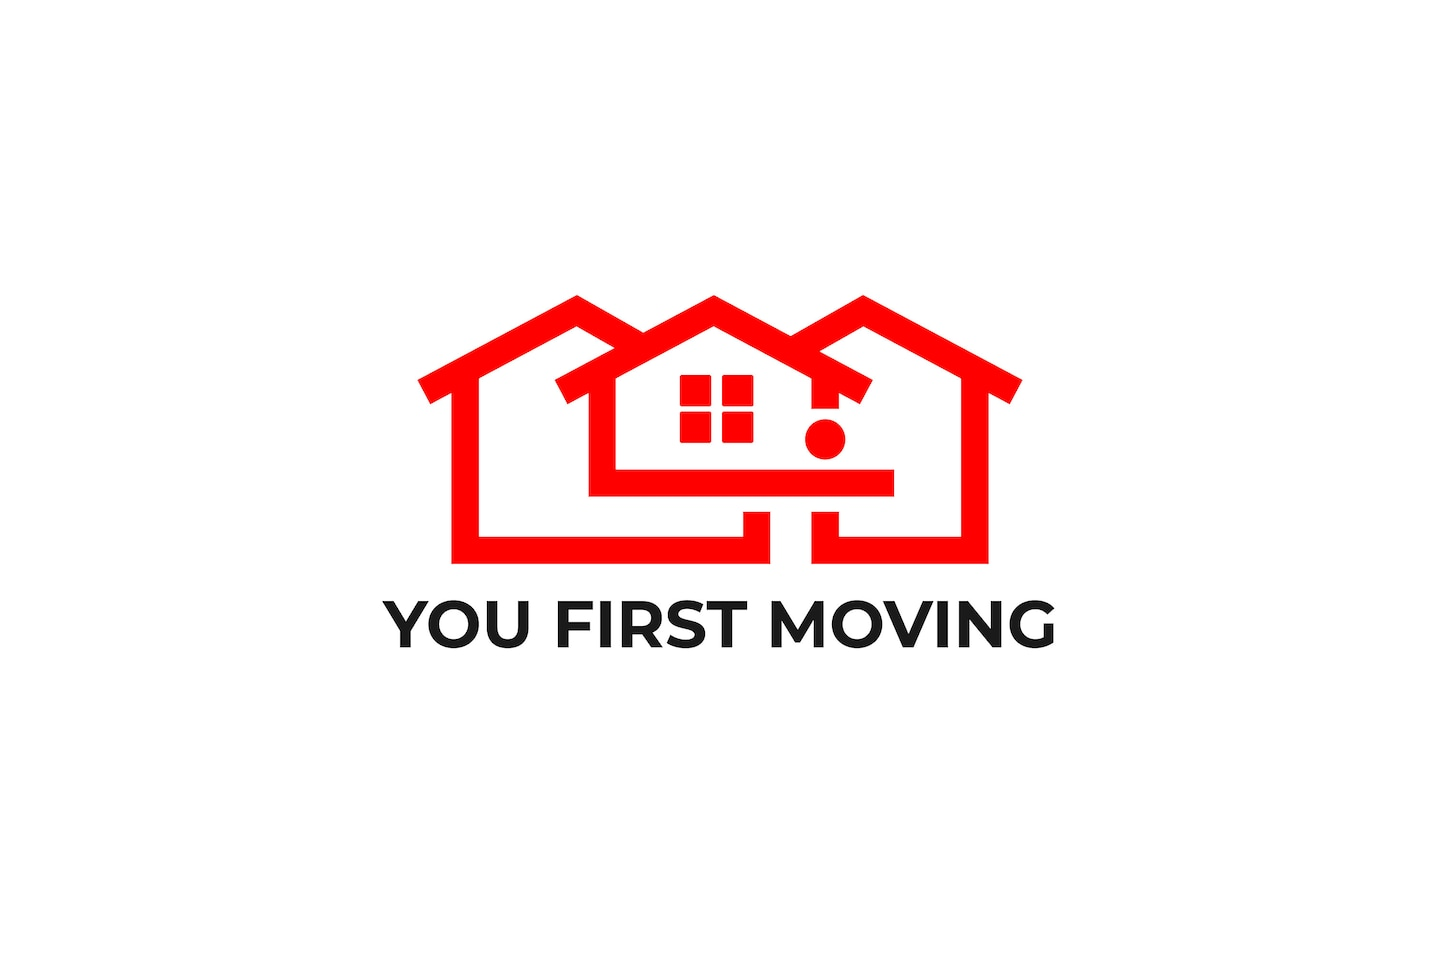 You First Moving